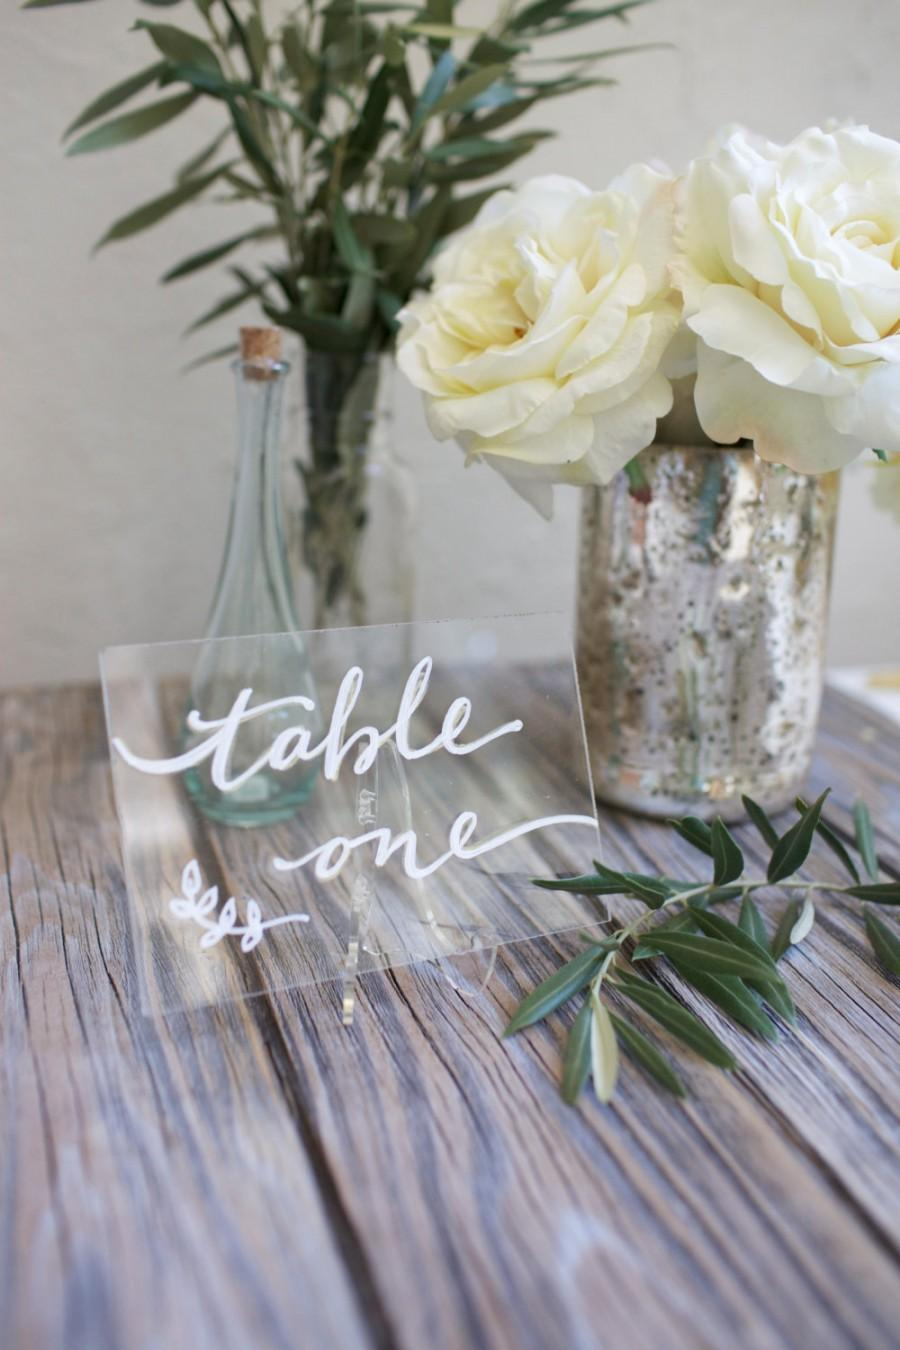 Acrylic Plexigl Table Numbers Or Names Size 4 X 6 Clear Metallic Custom Designed For Your Unique Wedding Style Any Font